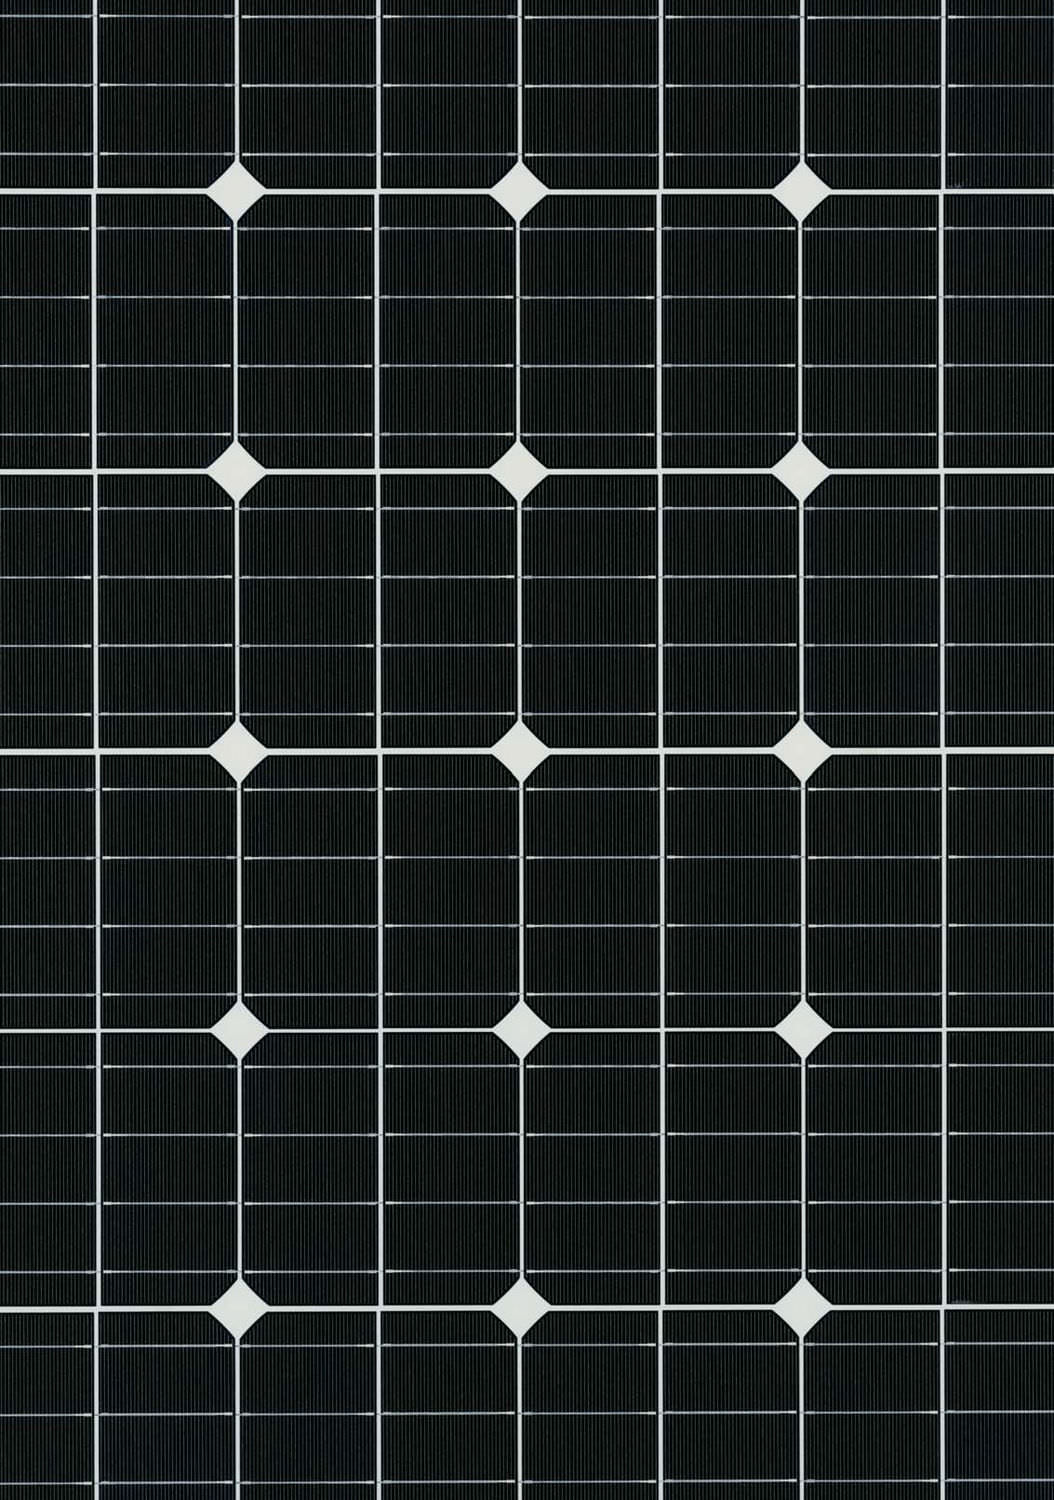 monocrystalline pv panel - pv-mle255hd - mitsubishi electric solar